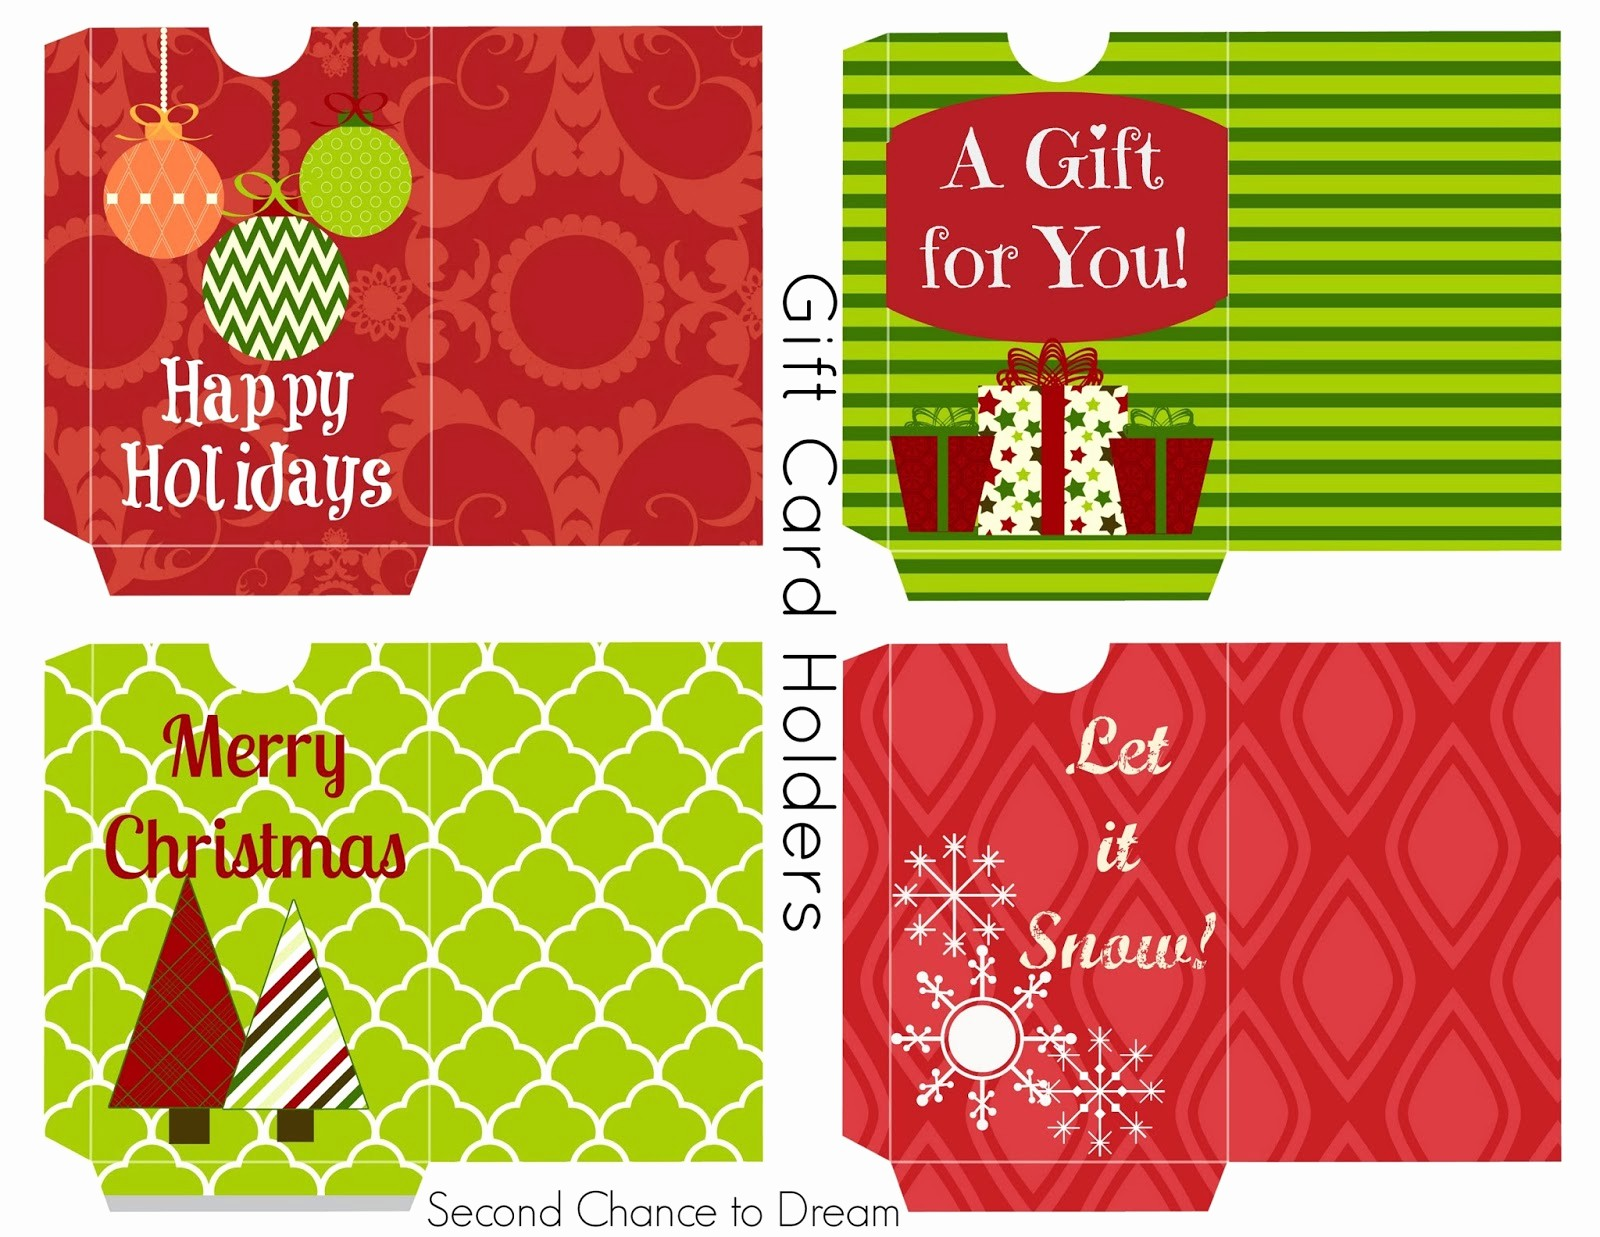 Free Printable Gift Cards Online Luxury Second Chance to Dream Free Printable Gift Tags & Gift